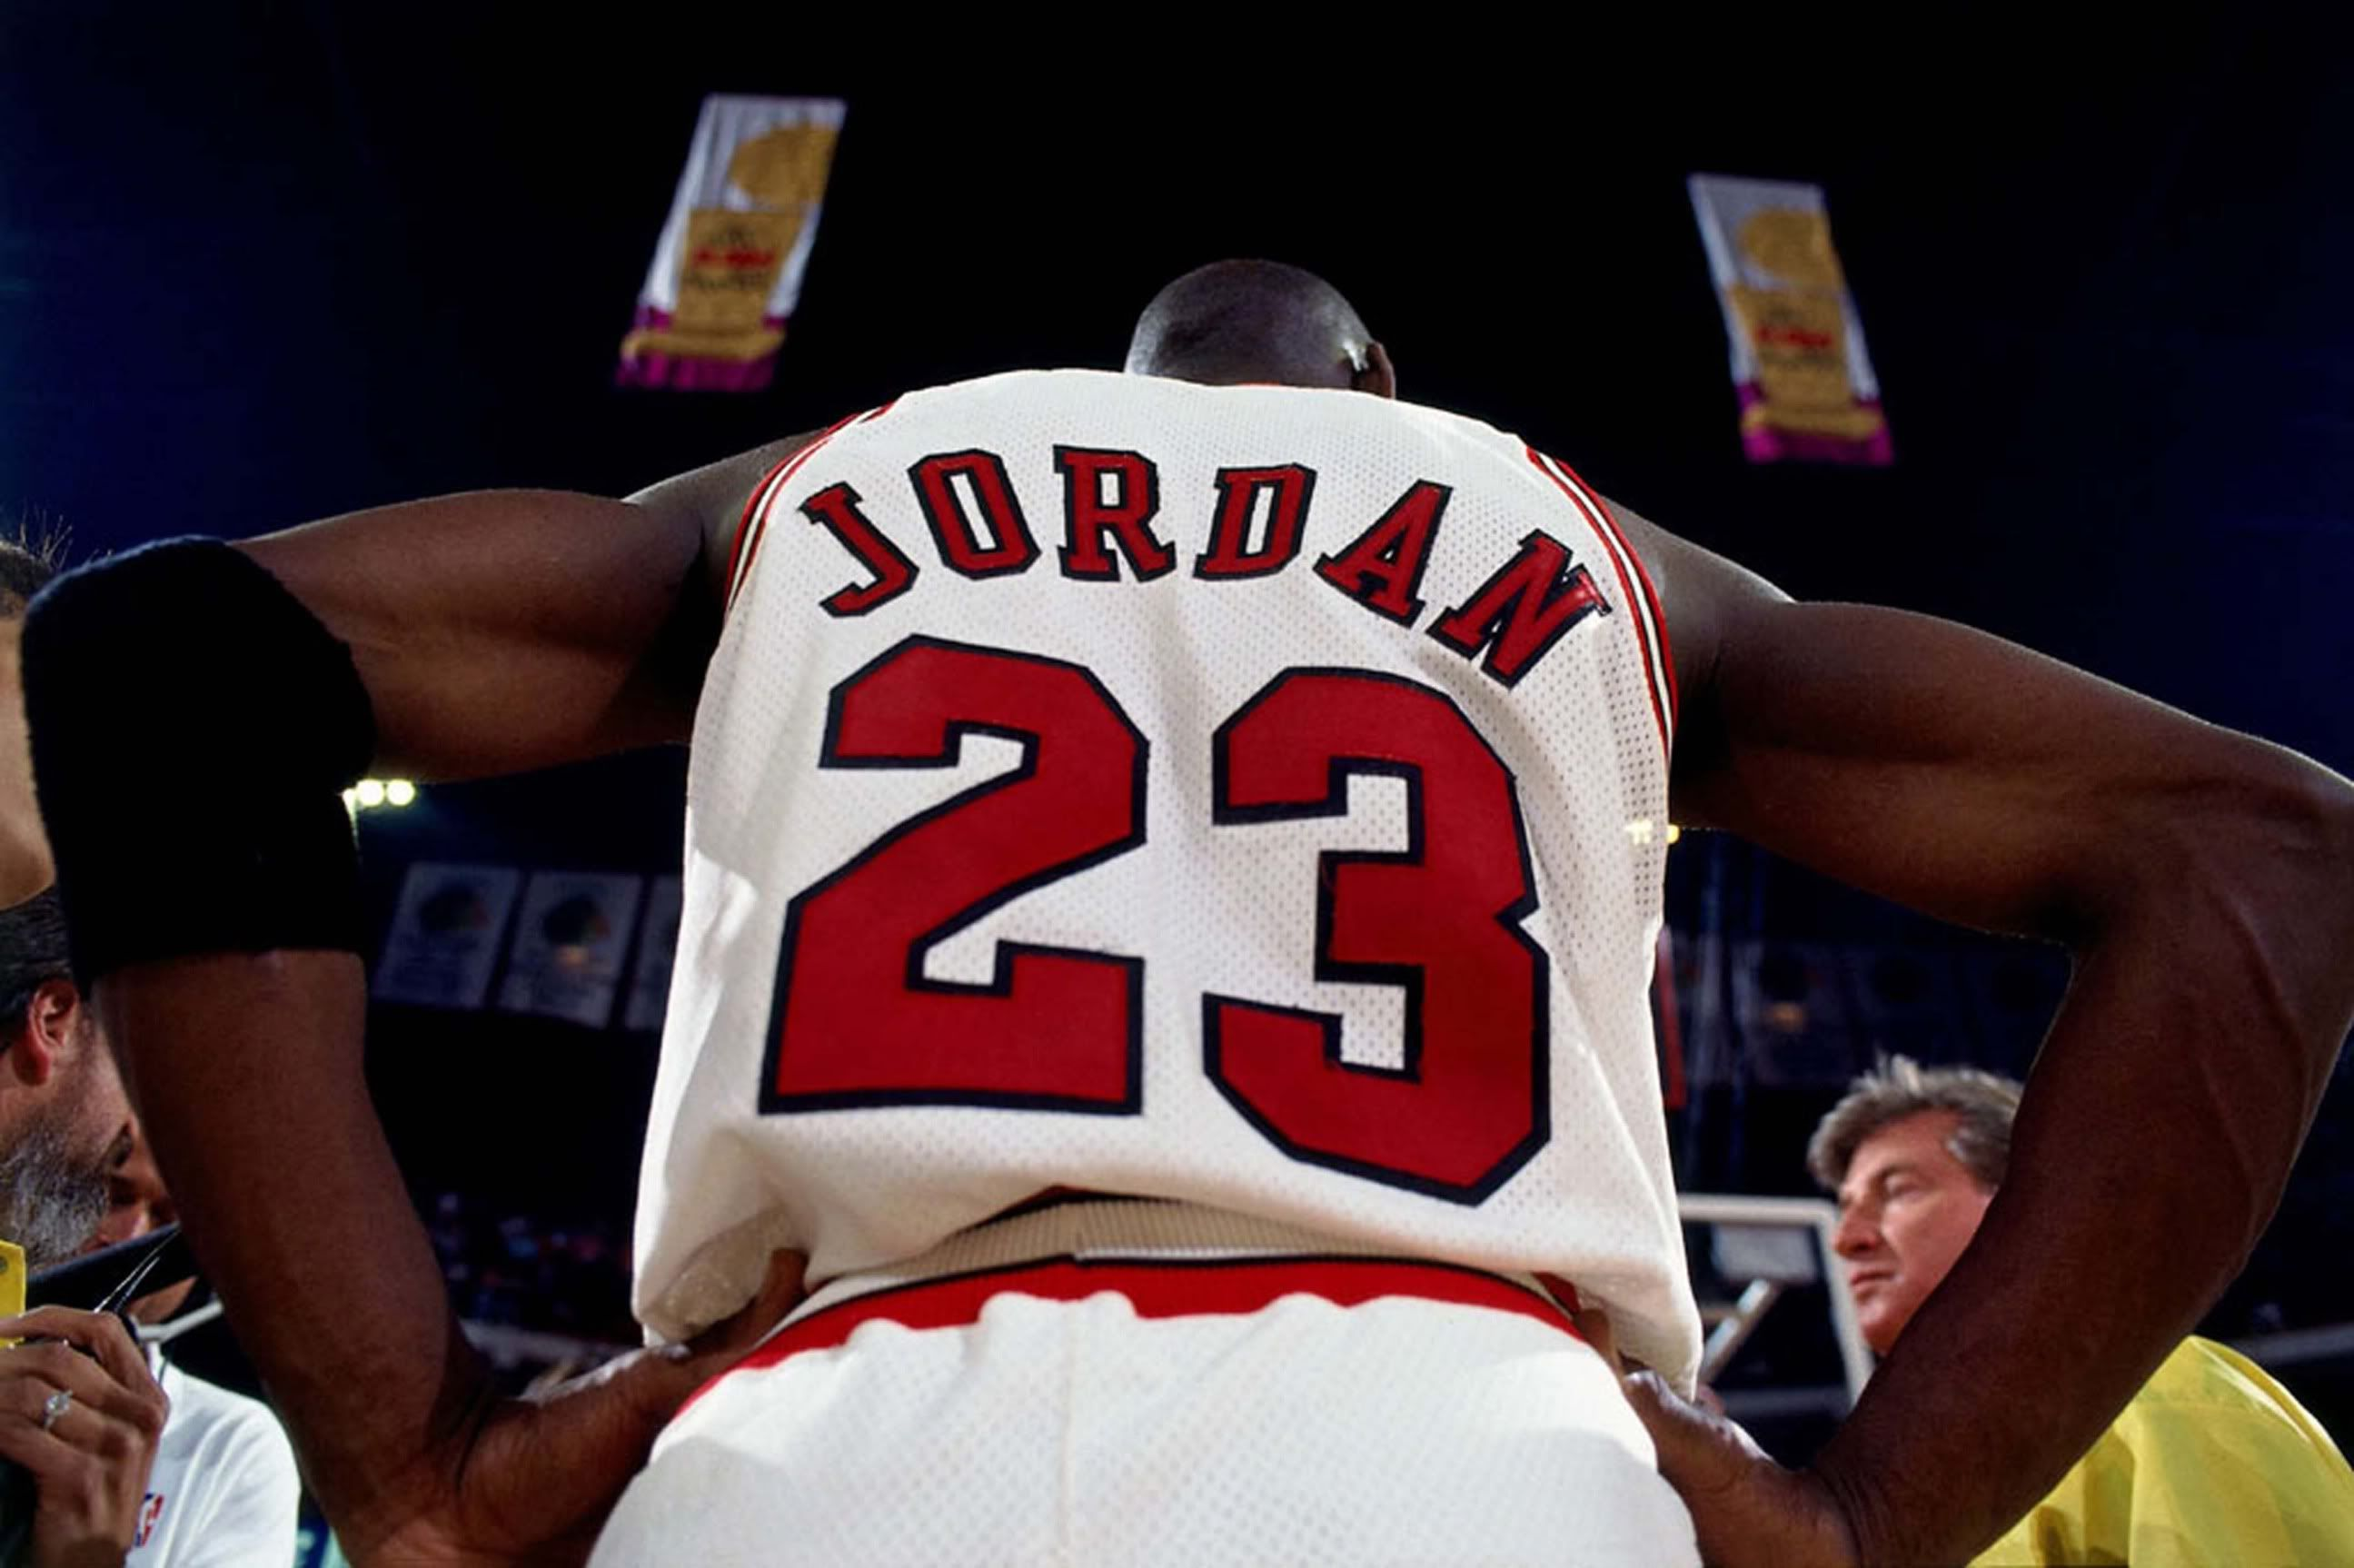 Michael Jordan 23 Wallpaper: Download Michael Jordan 23 Wallpaper Gallery